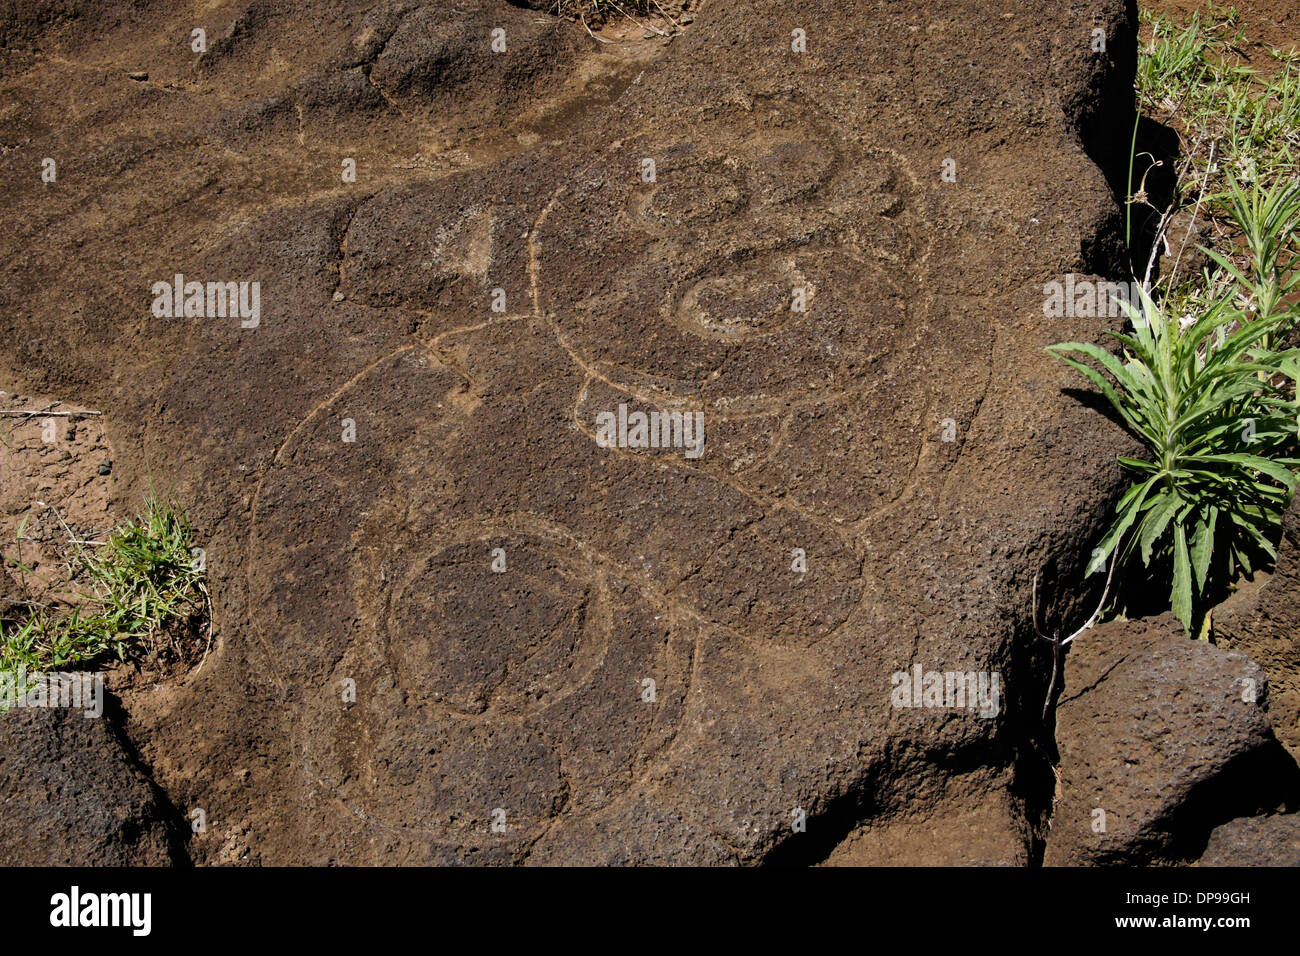 Petroglyph in volcanic rock, Easter Island, Chile - Stock Image